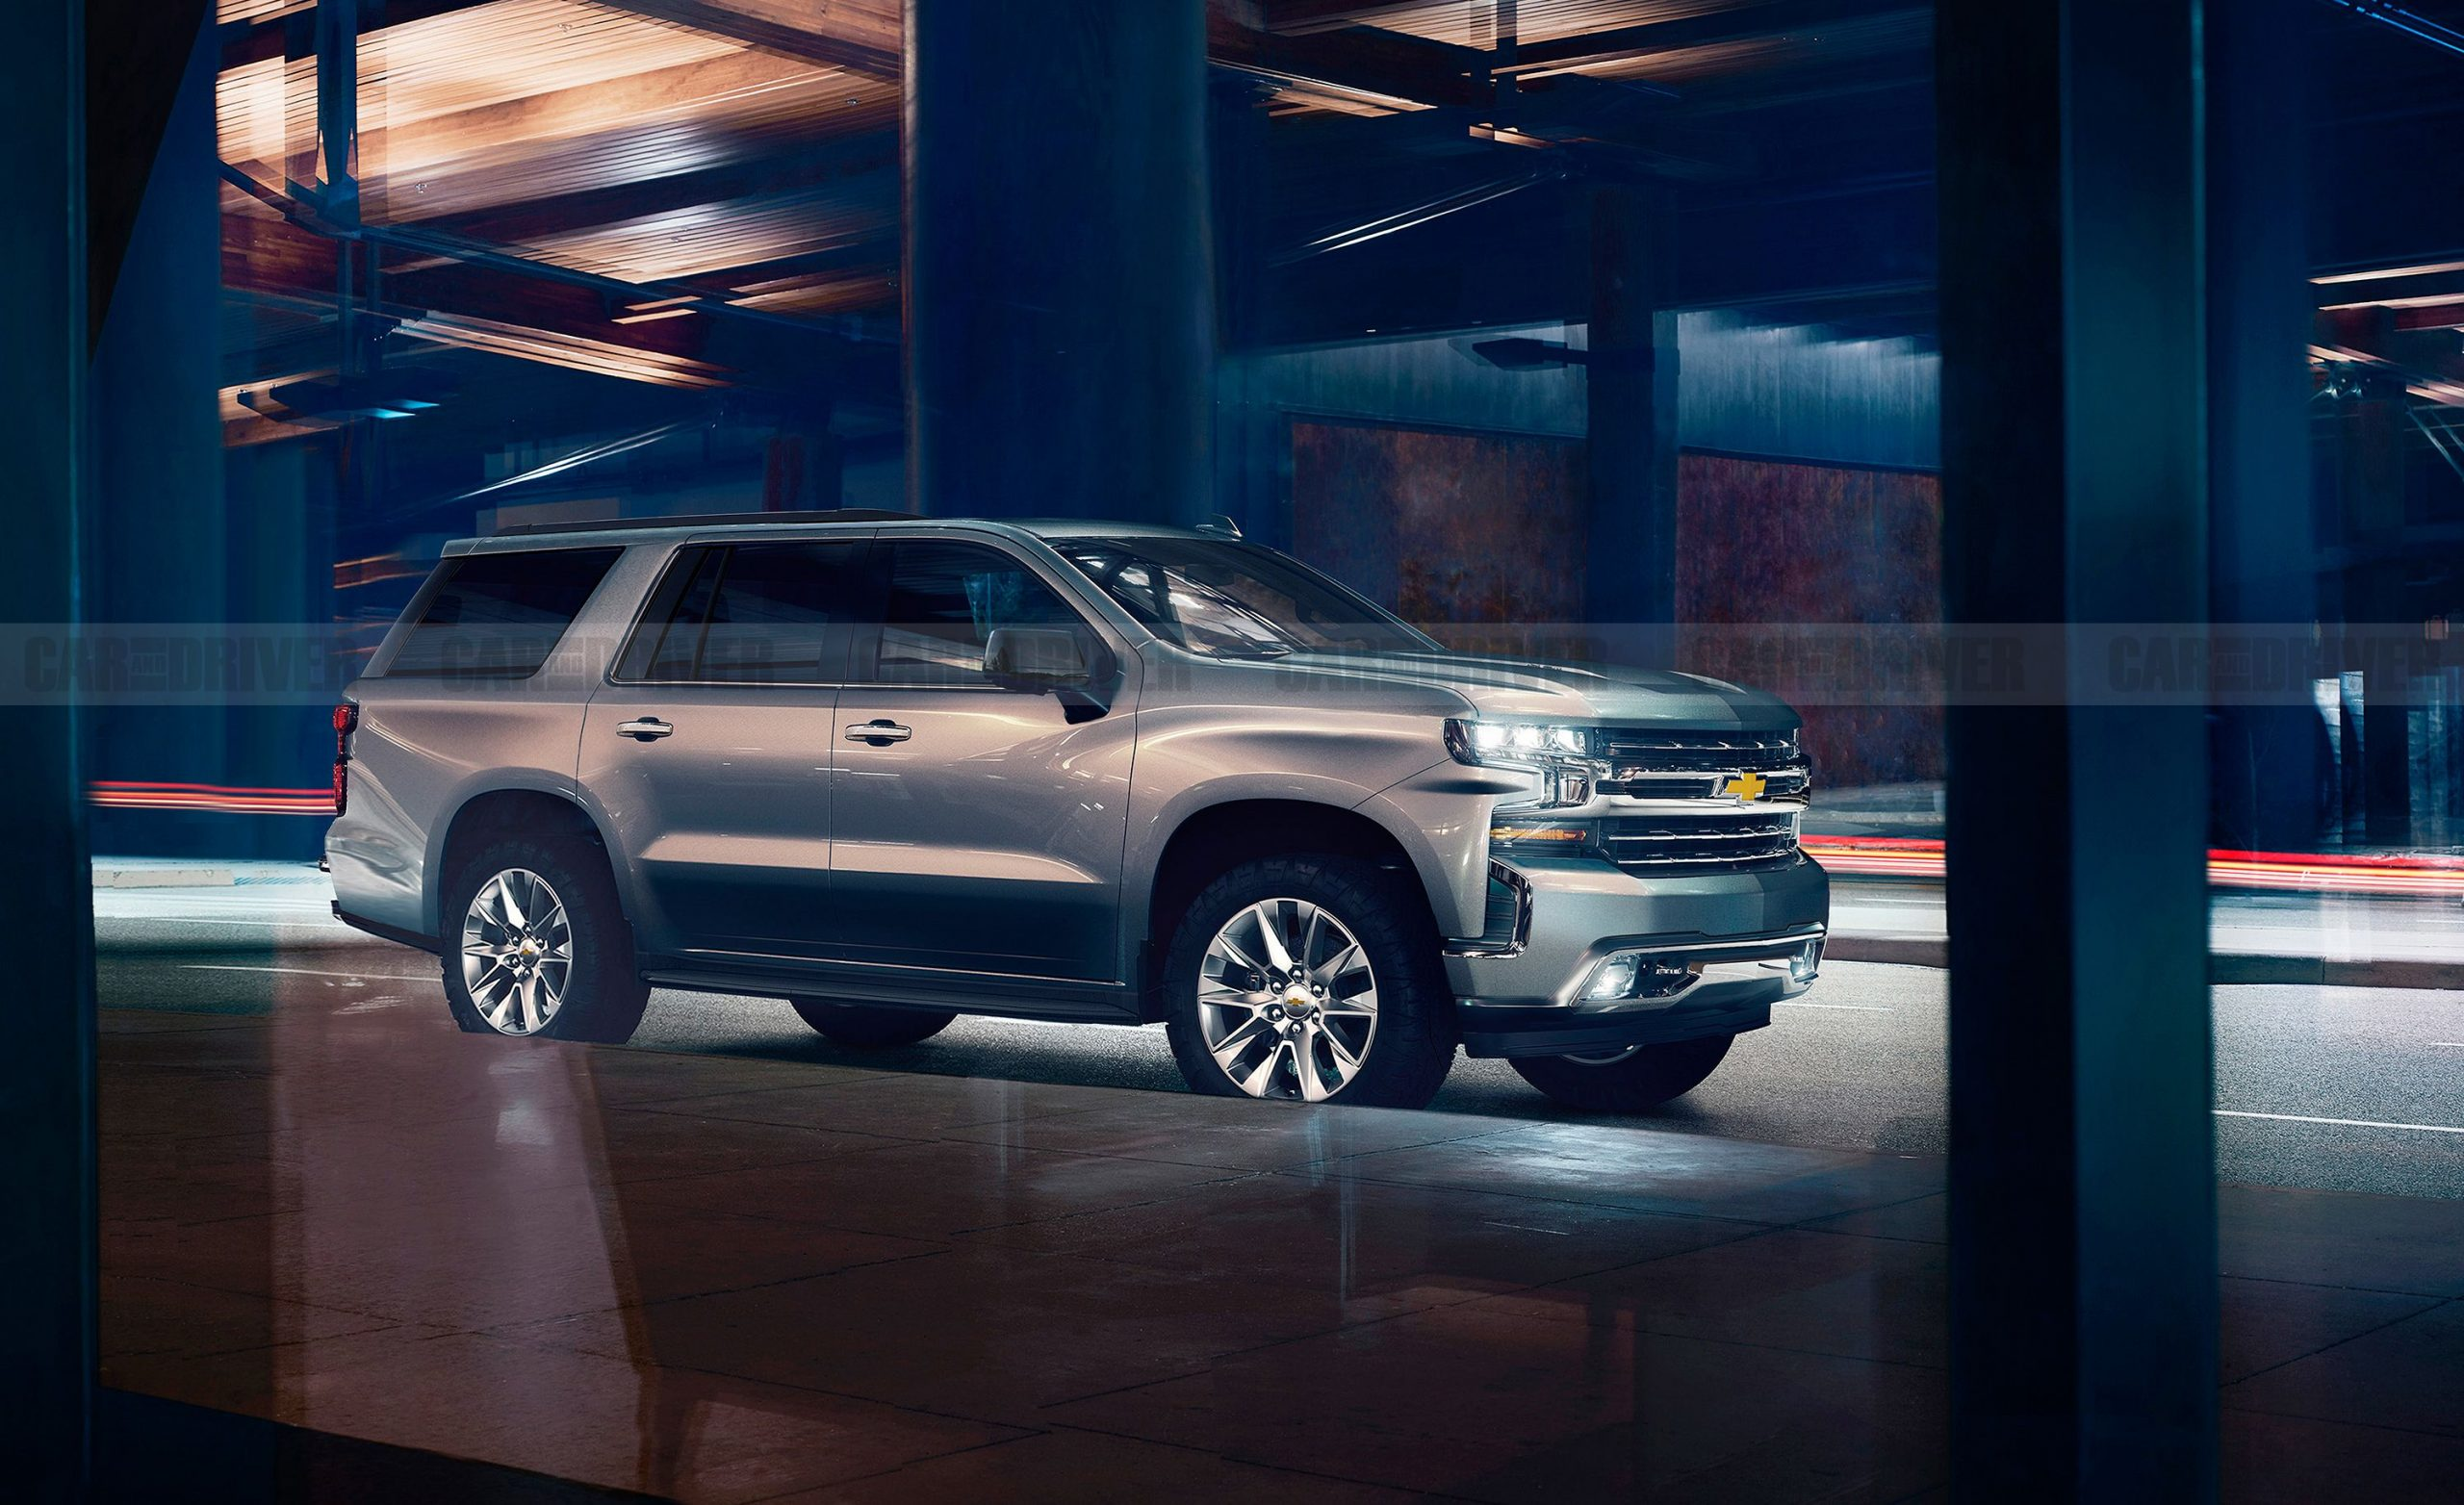 Comments On: The 2021 Chevrolet Tahoe Is A Big Suv That Pictures Of A 2021 Chevrolet Silverado Forum, Fuel Economy, Gas Mileage